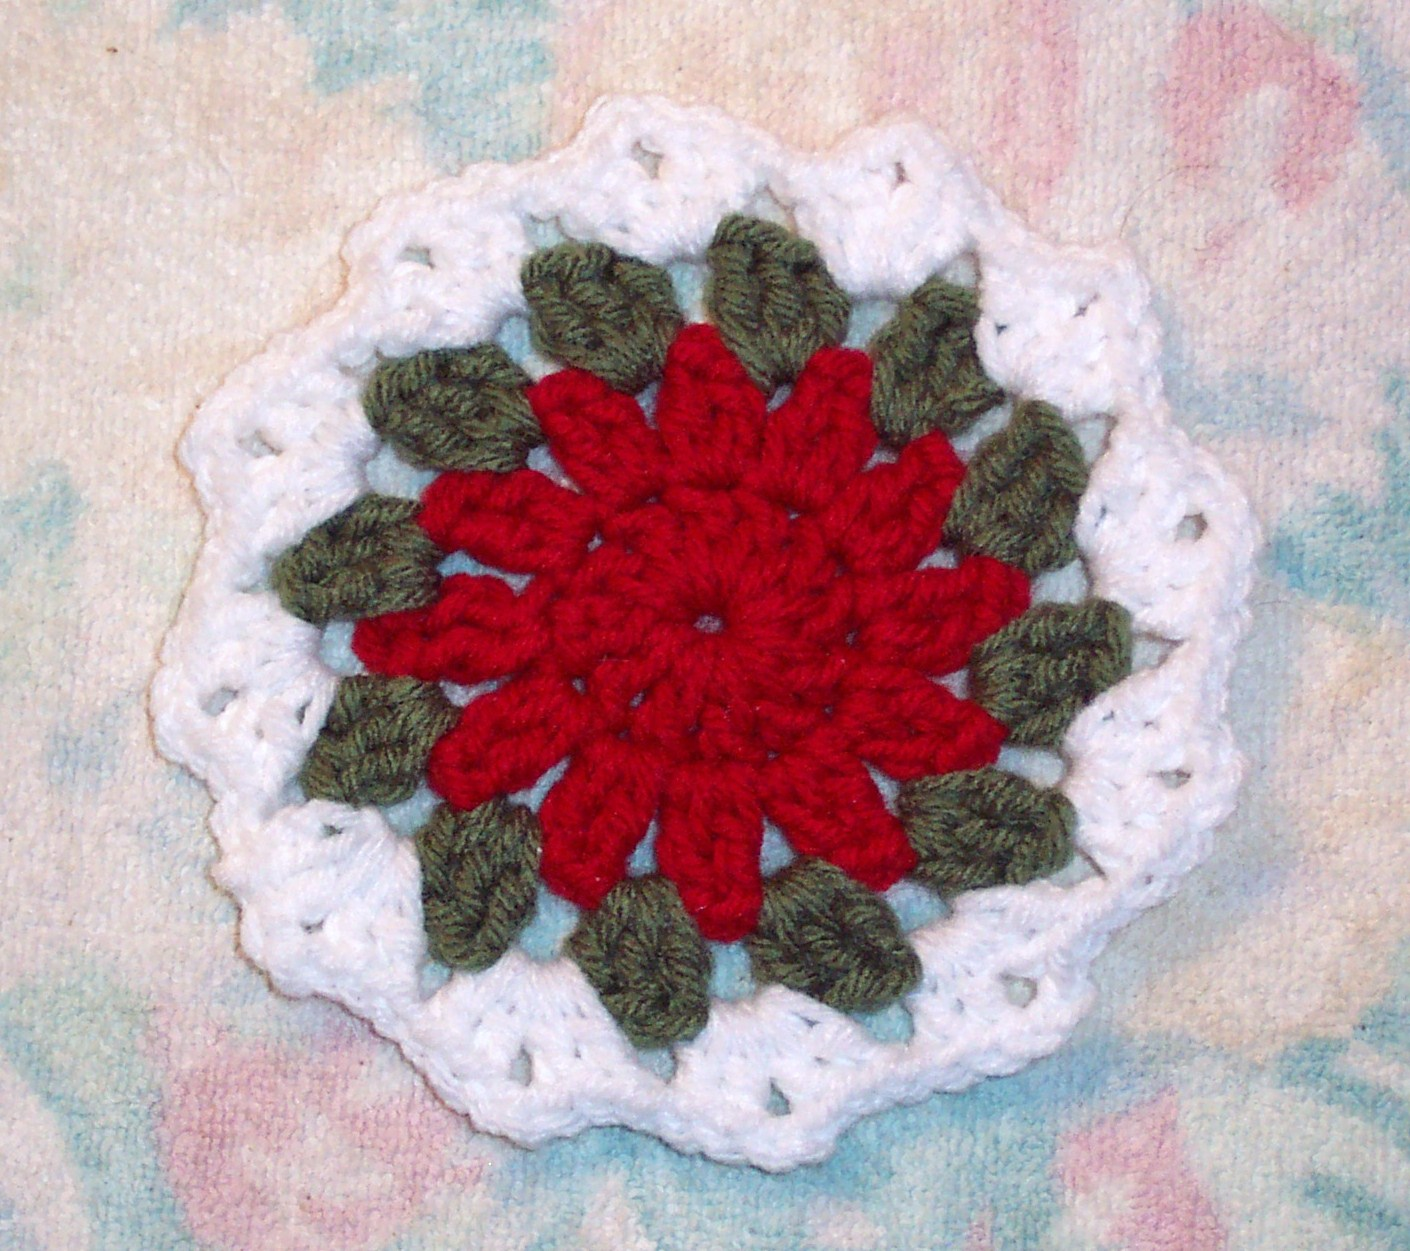 SmoothFox Crochet and Knit: SmoothFoxs Holiday Coaster - Free Pattern